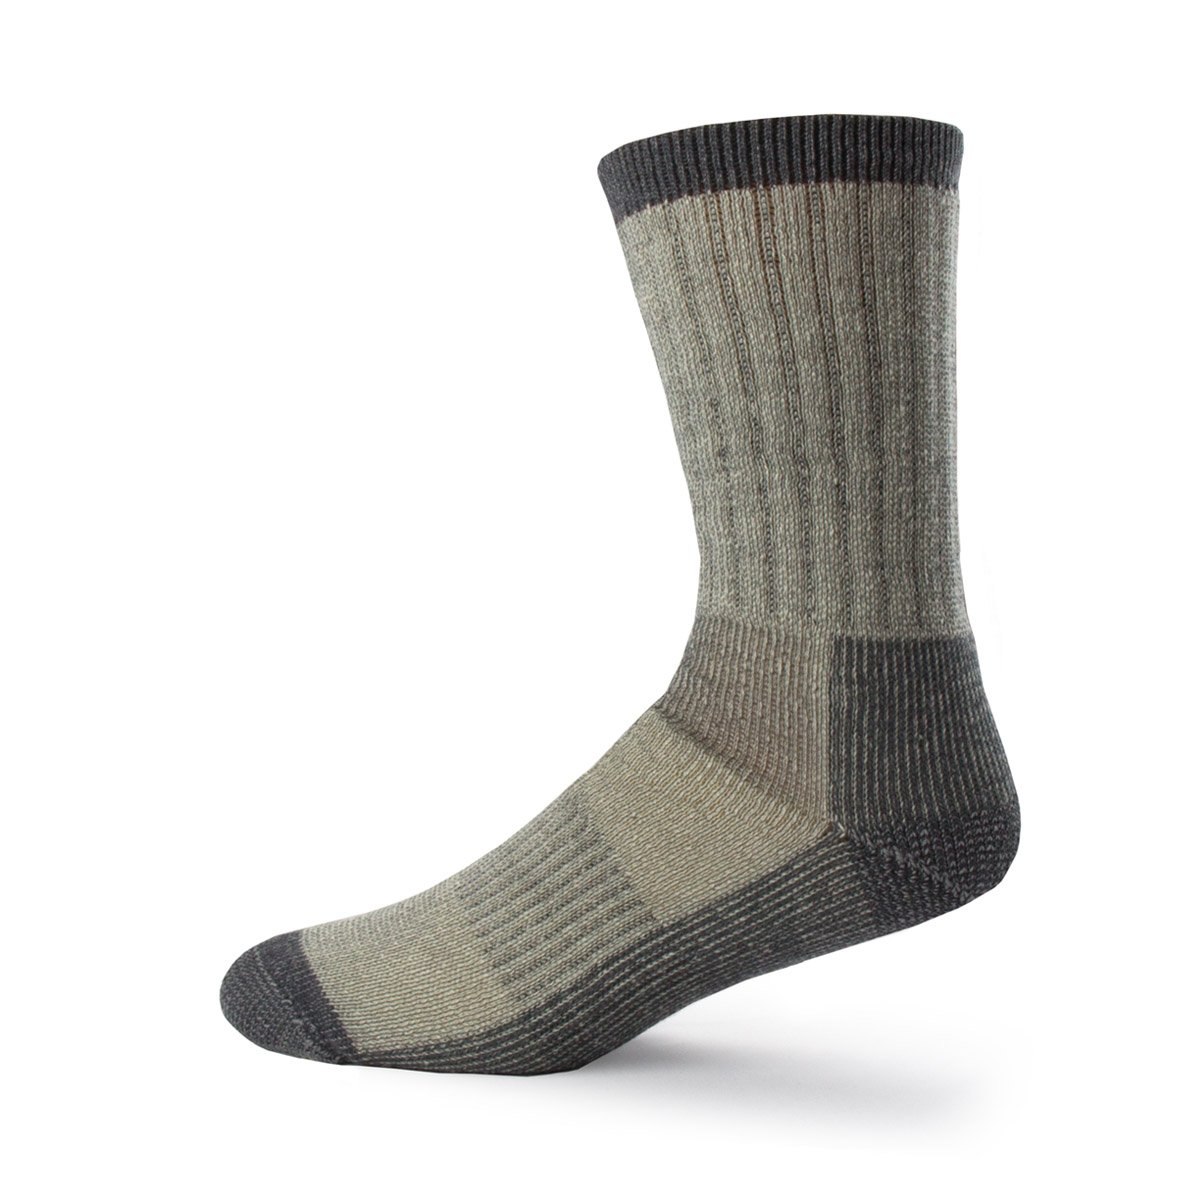 Minus33 Merino Wool Day Hiker Sock, Gray, Small by Minus33 Merino Wool